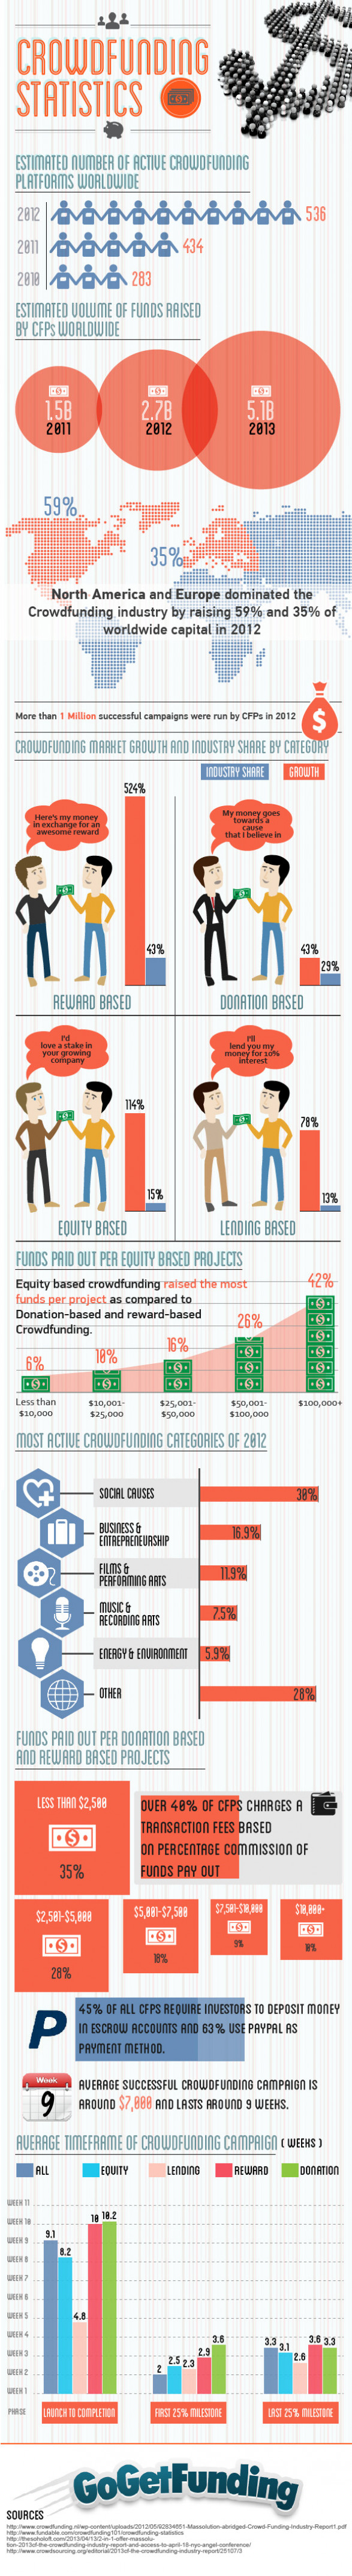 Crowdfunding Statistics and Trends